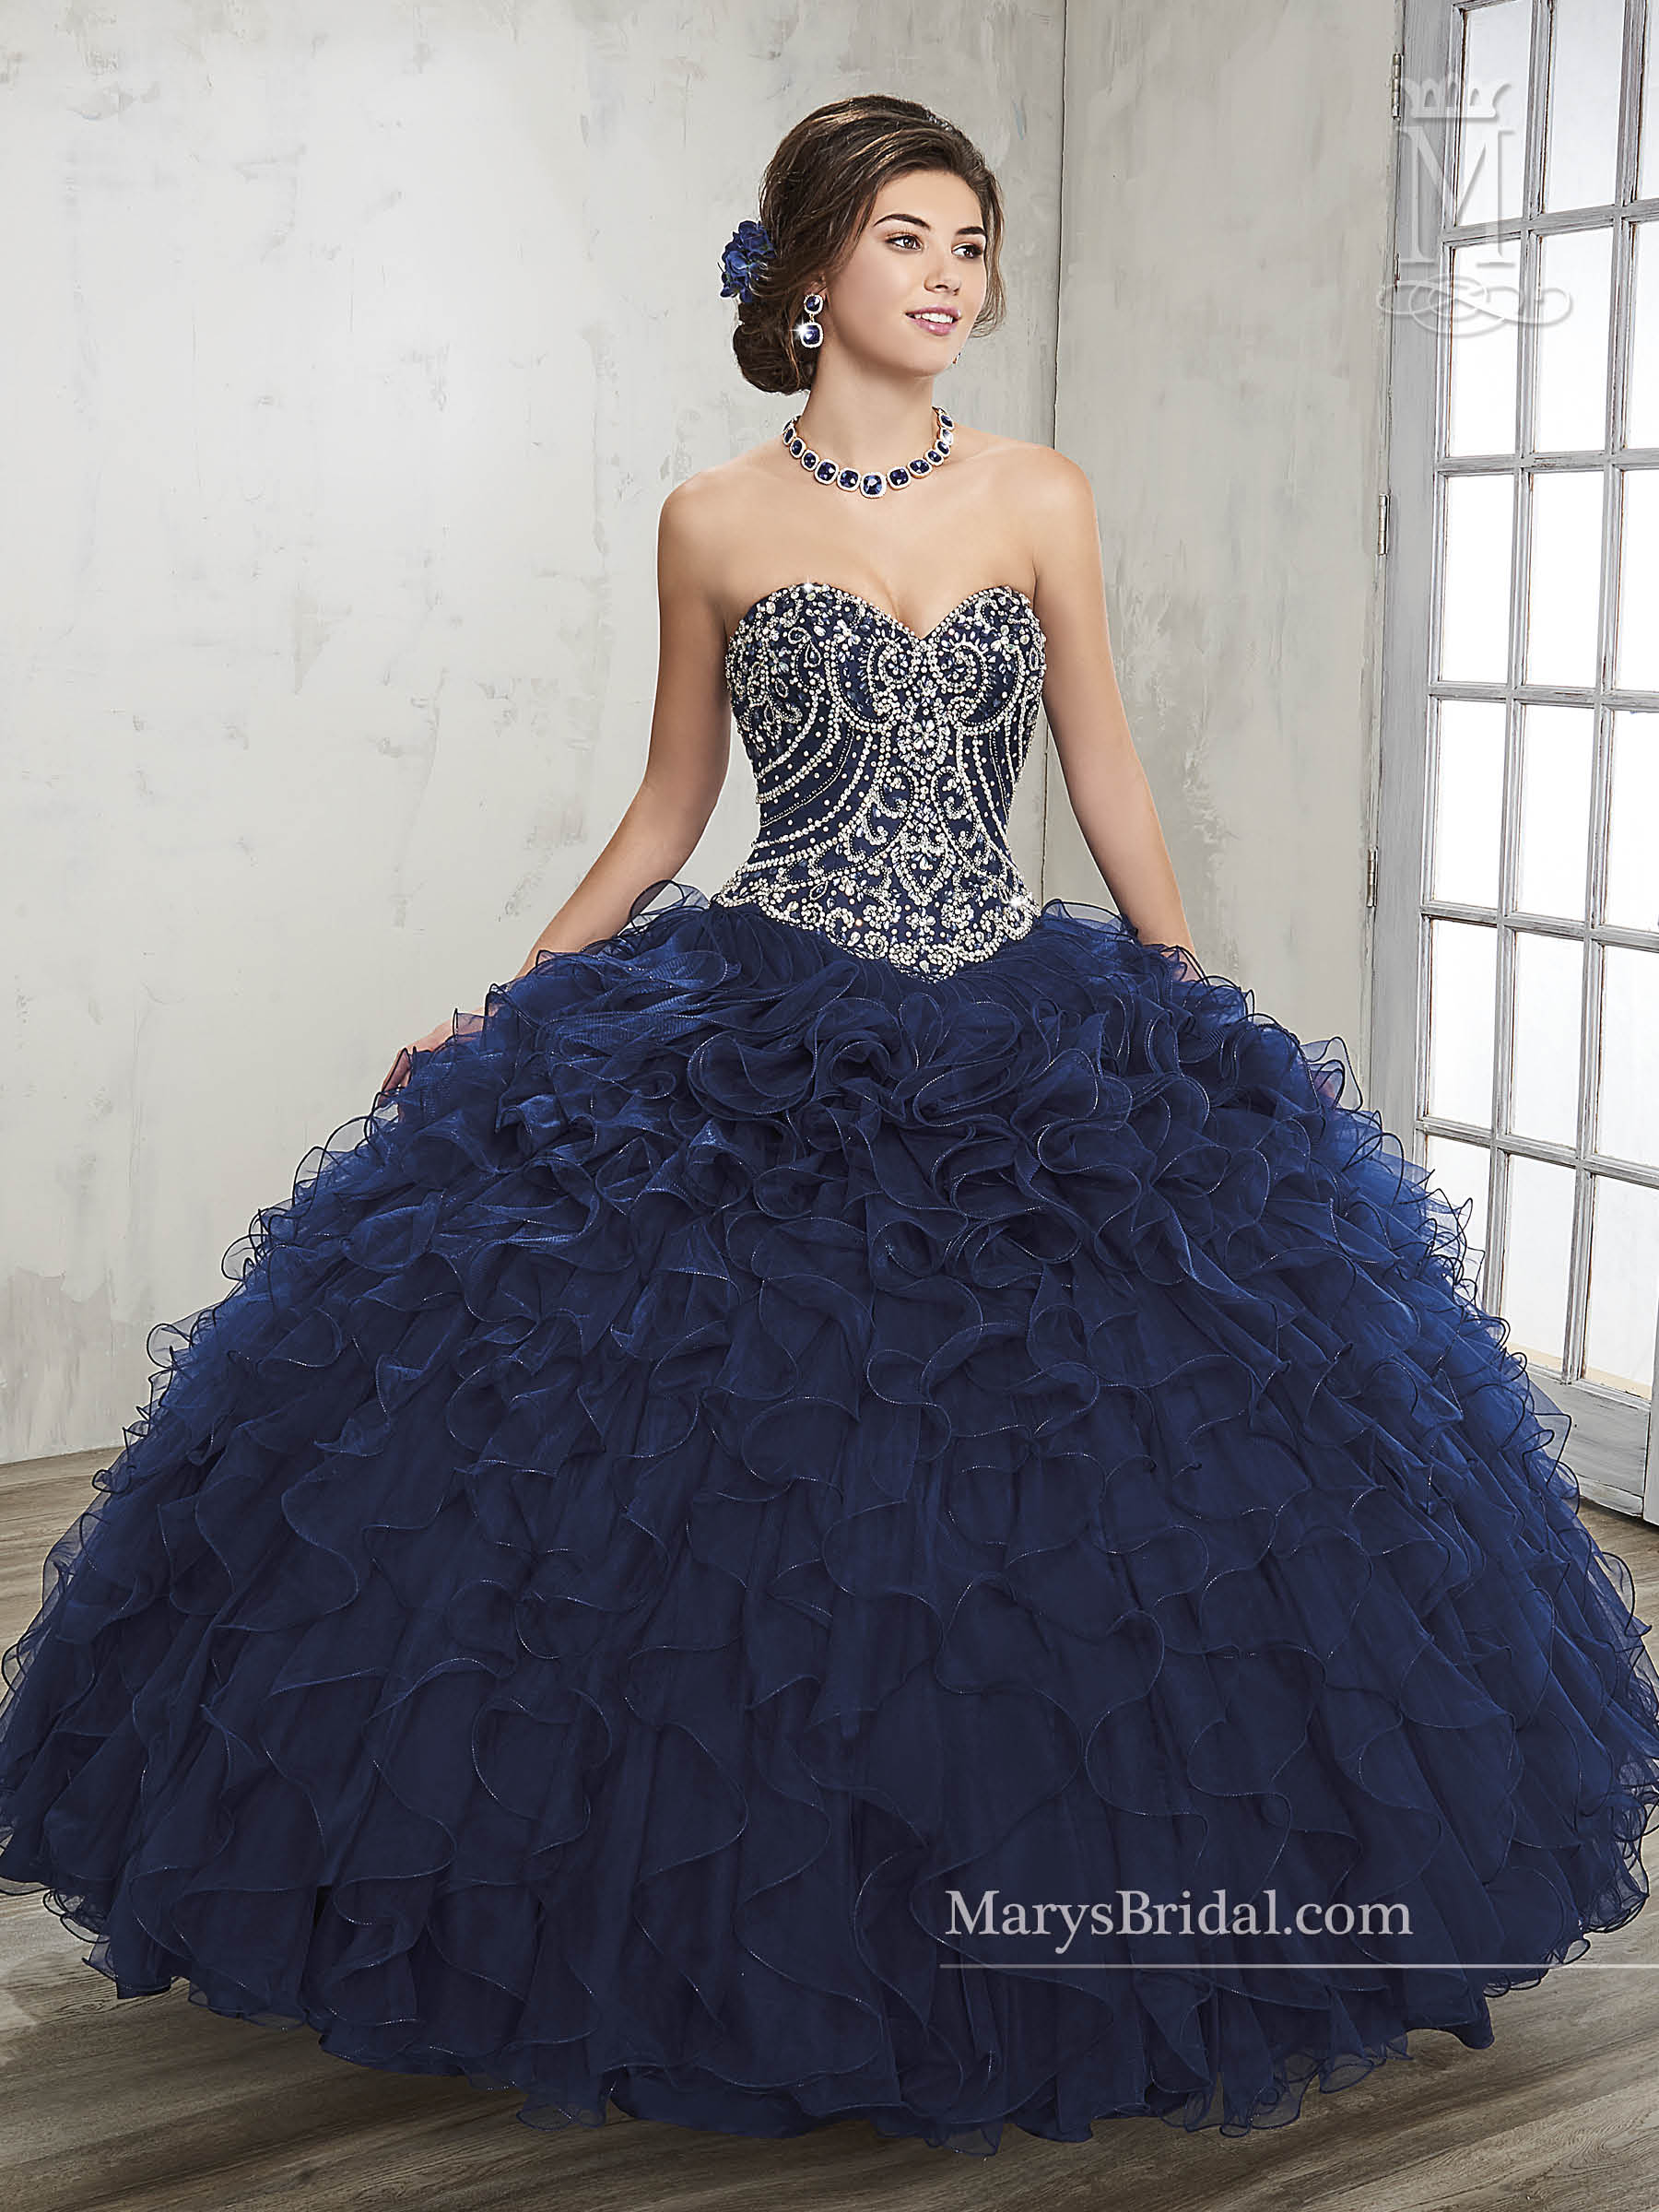 Marys Bridal 4Q504 Quinceanera Dress | MadameBridal.com